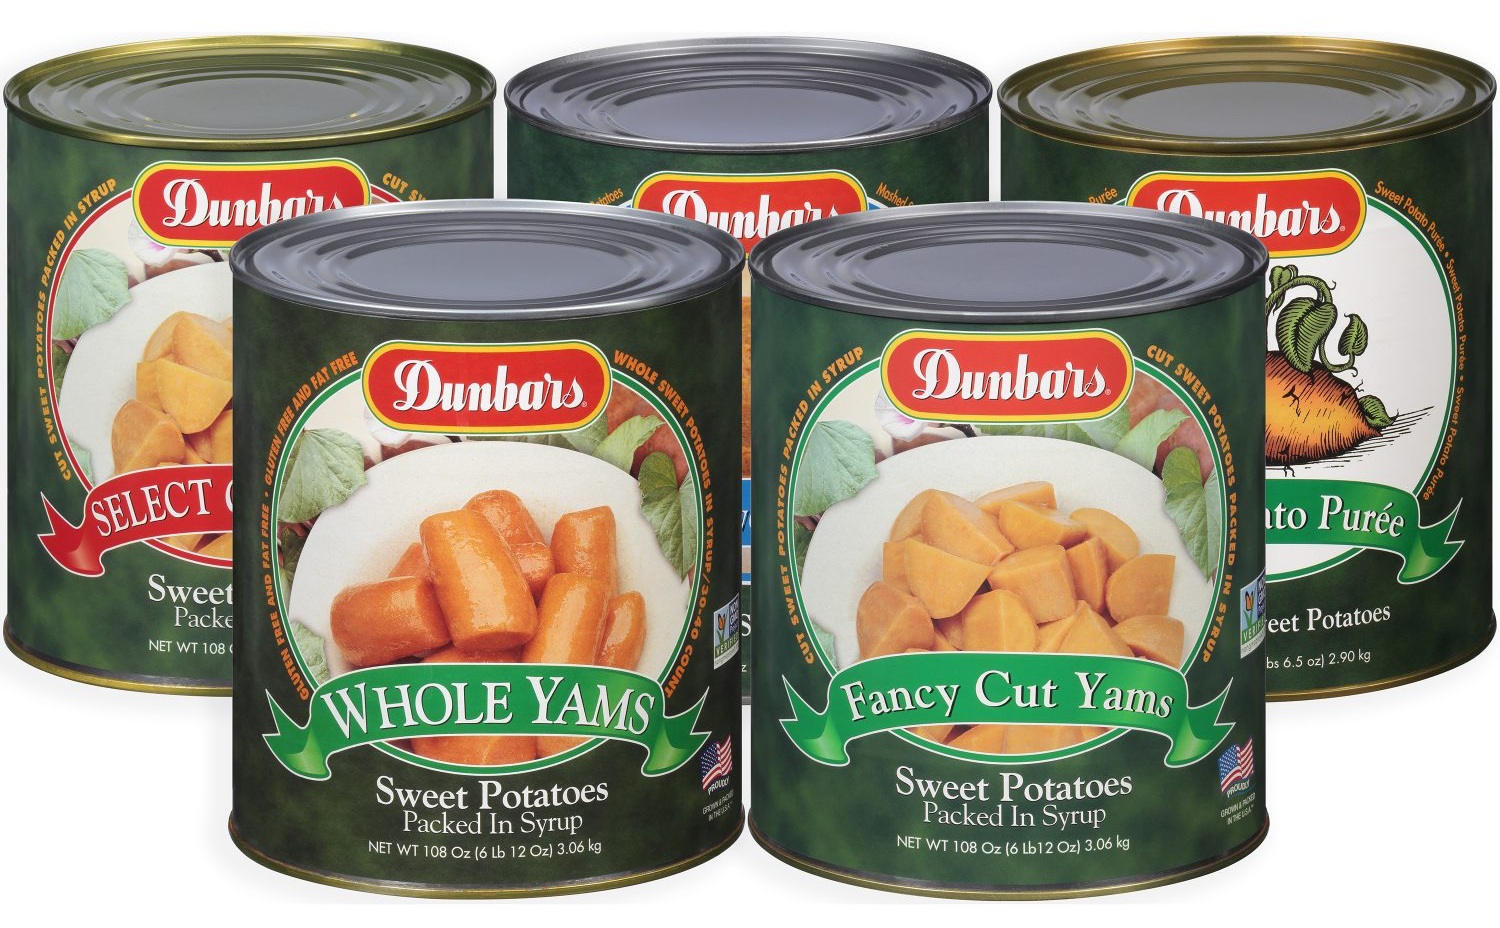 Dunbars Sweet Potatoes, #10 Cans, Fancy Cut Yams, Whole Yams, Select Cut Yams, Sweet Potato Puree